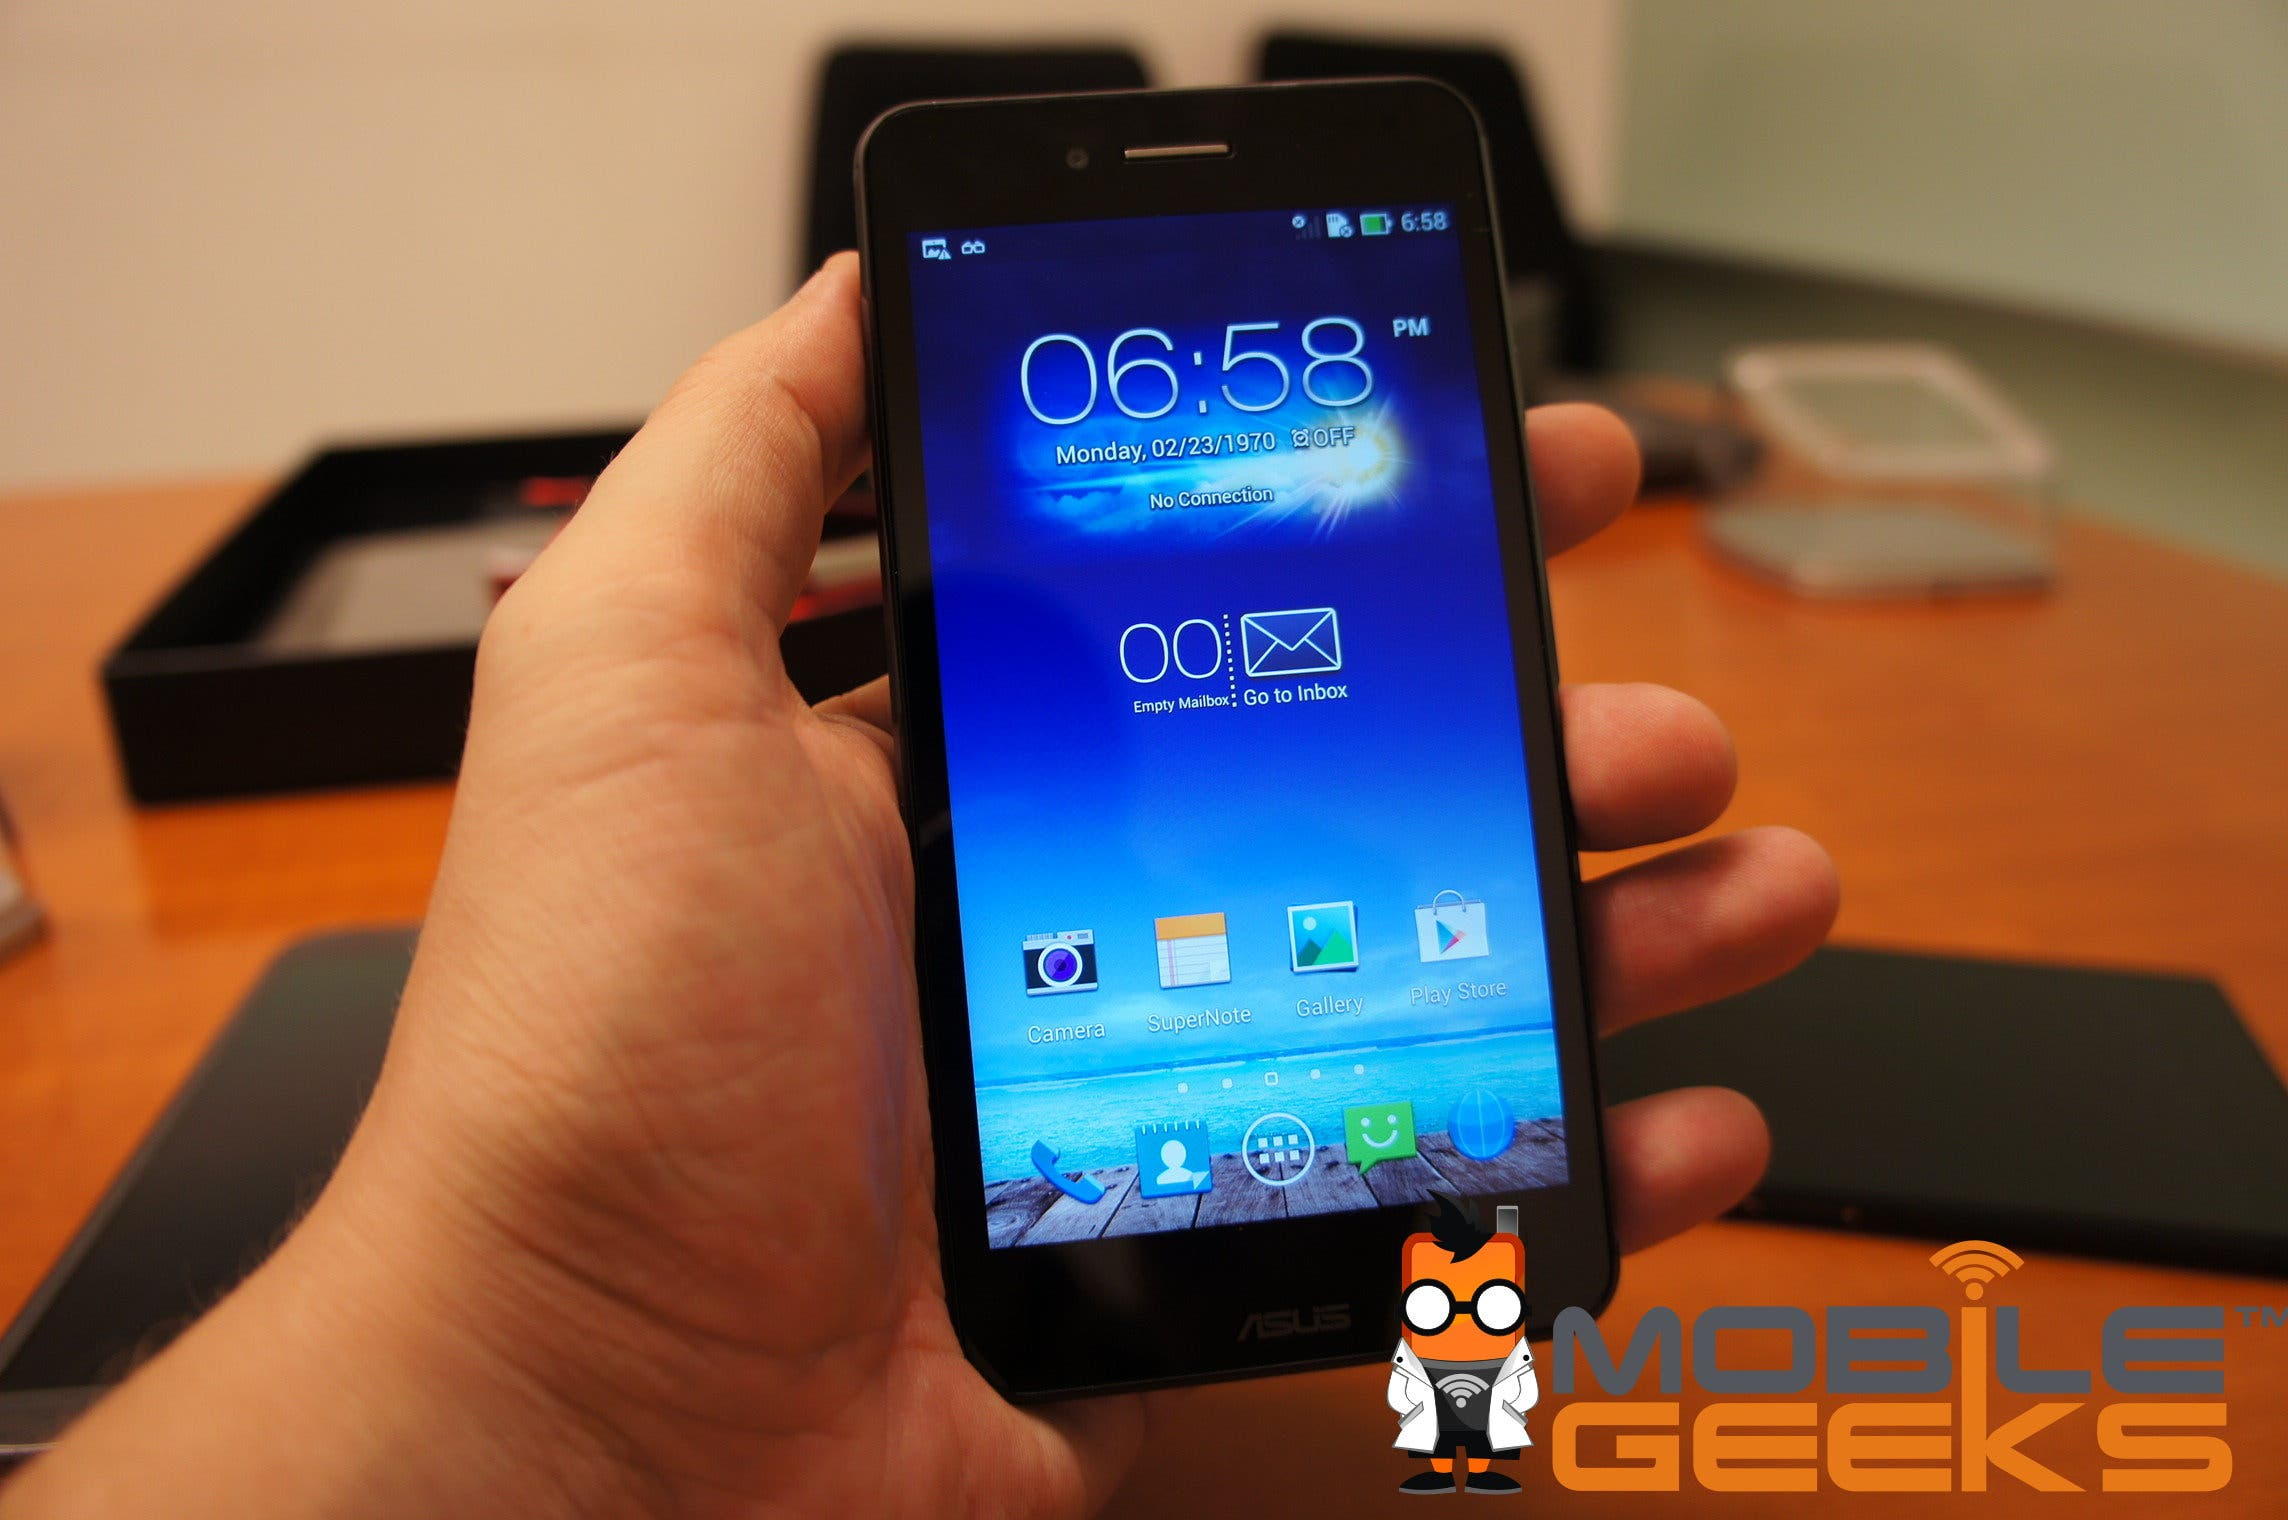 New ASUS PadFone Infinity im Test – Unboxing, Walkthrough, Empfehlung [Video]